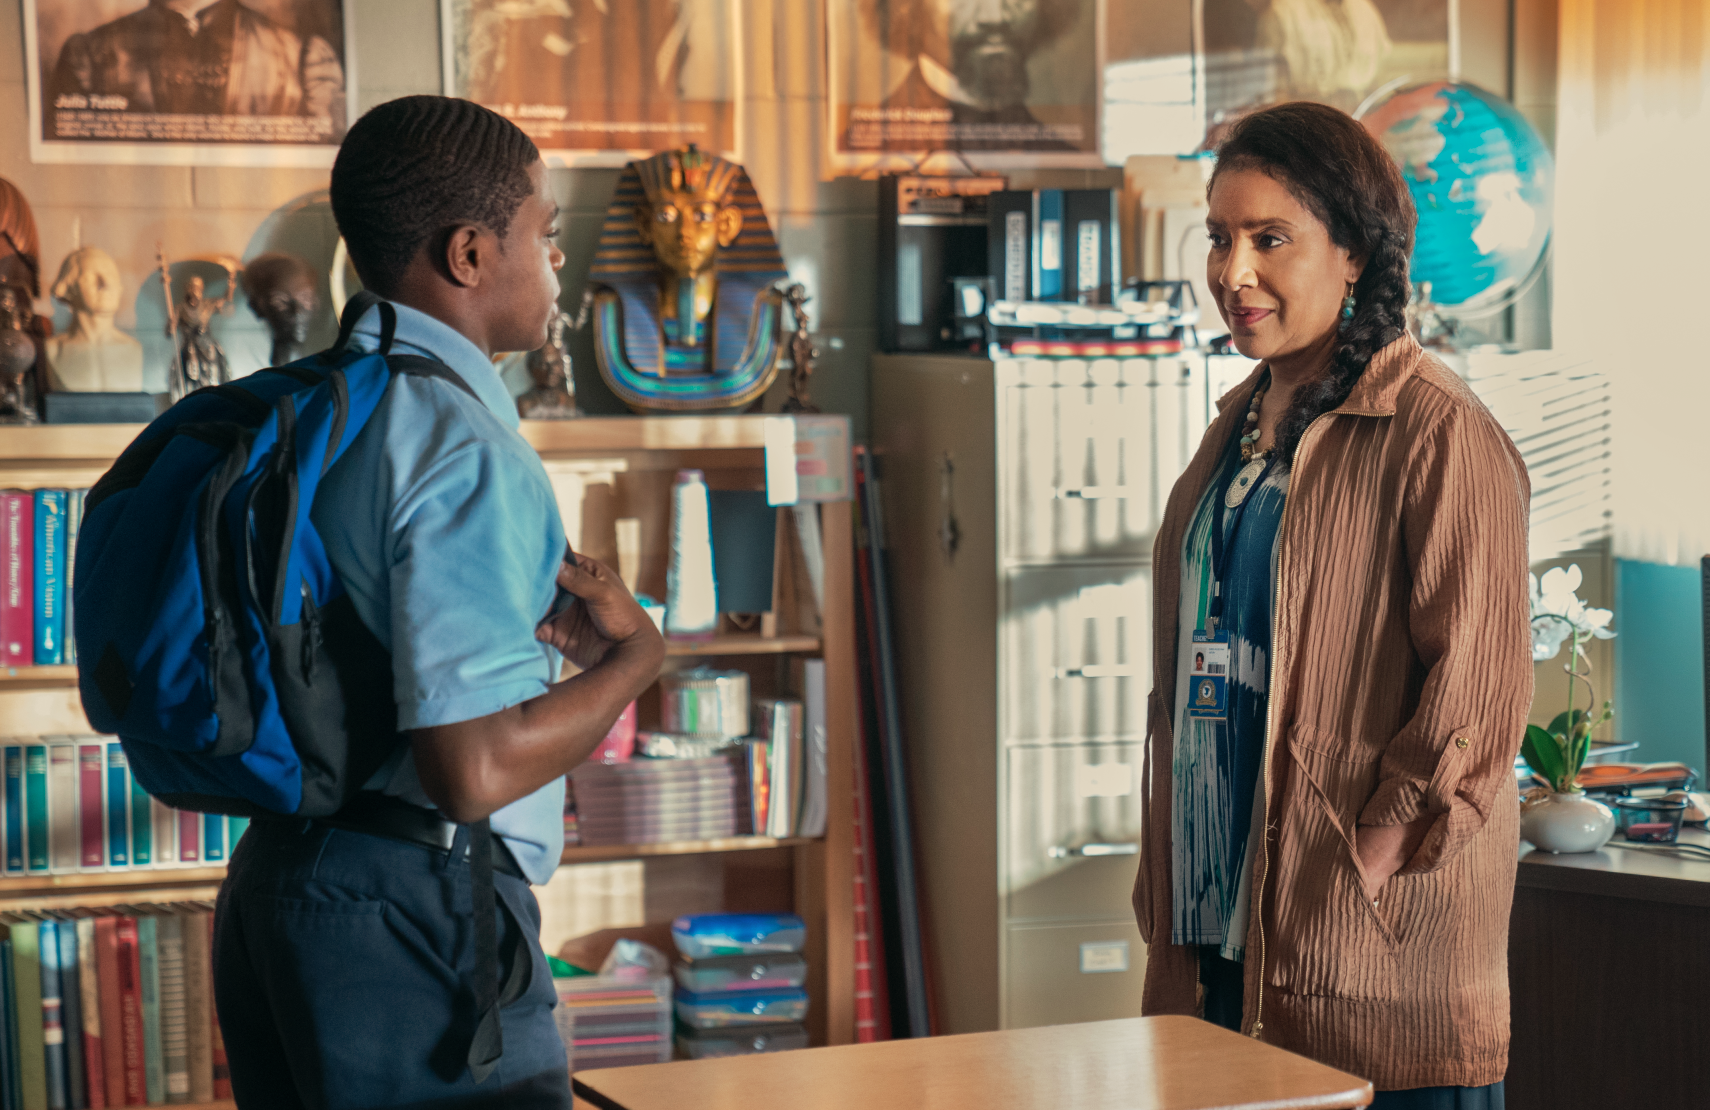 Phylicia Rashad plays David's caring instructor in the gifted class at school in David Makes Man.